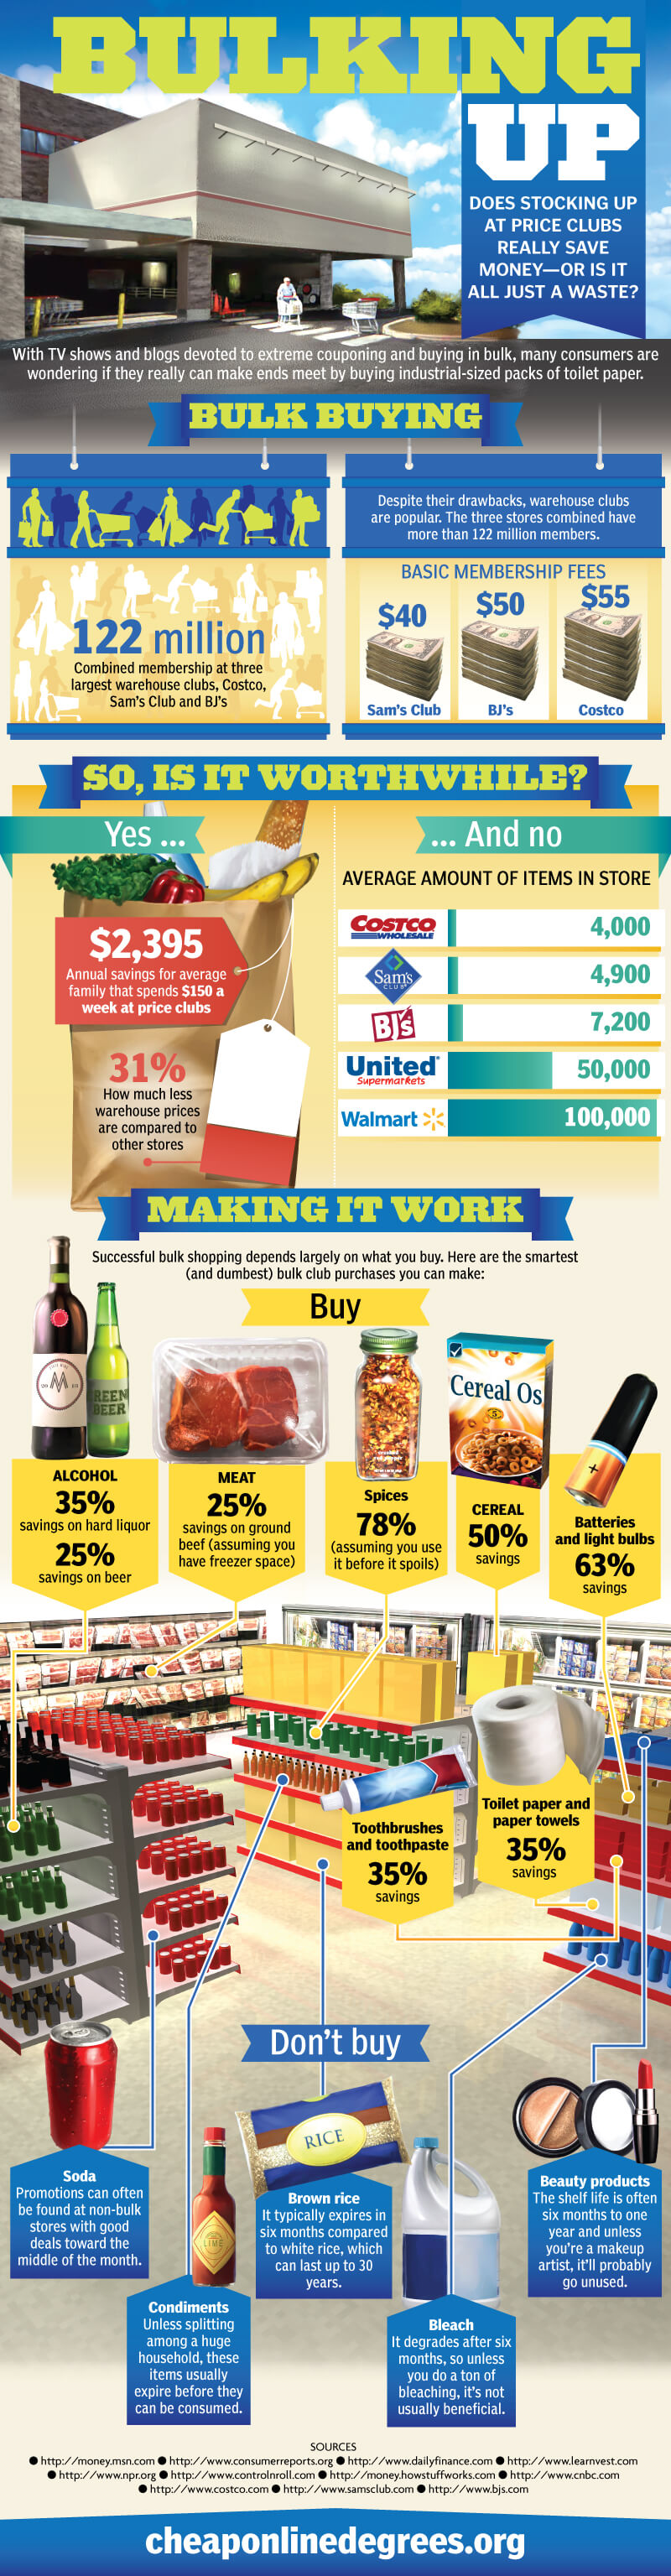 buying-in-bulk-infographic